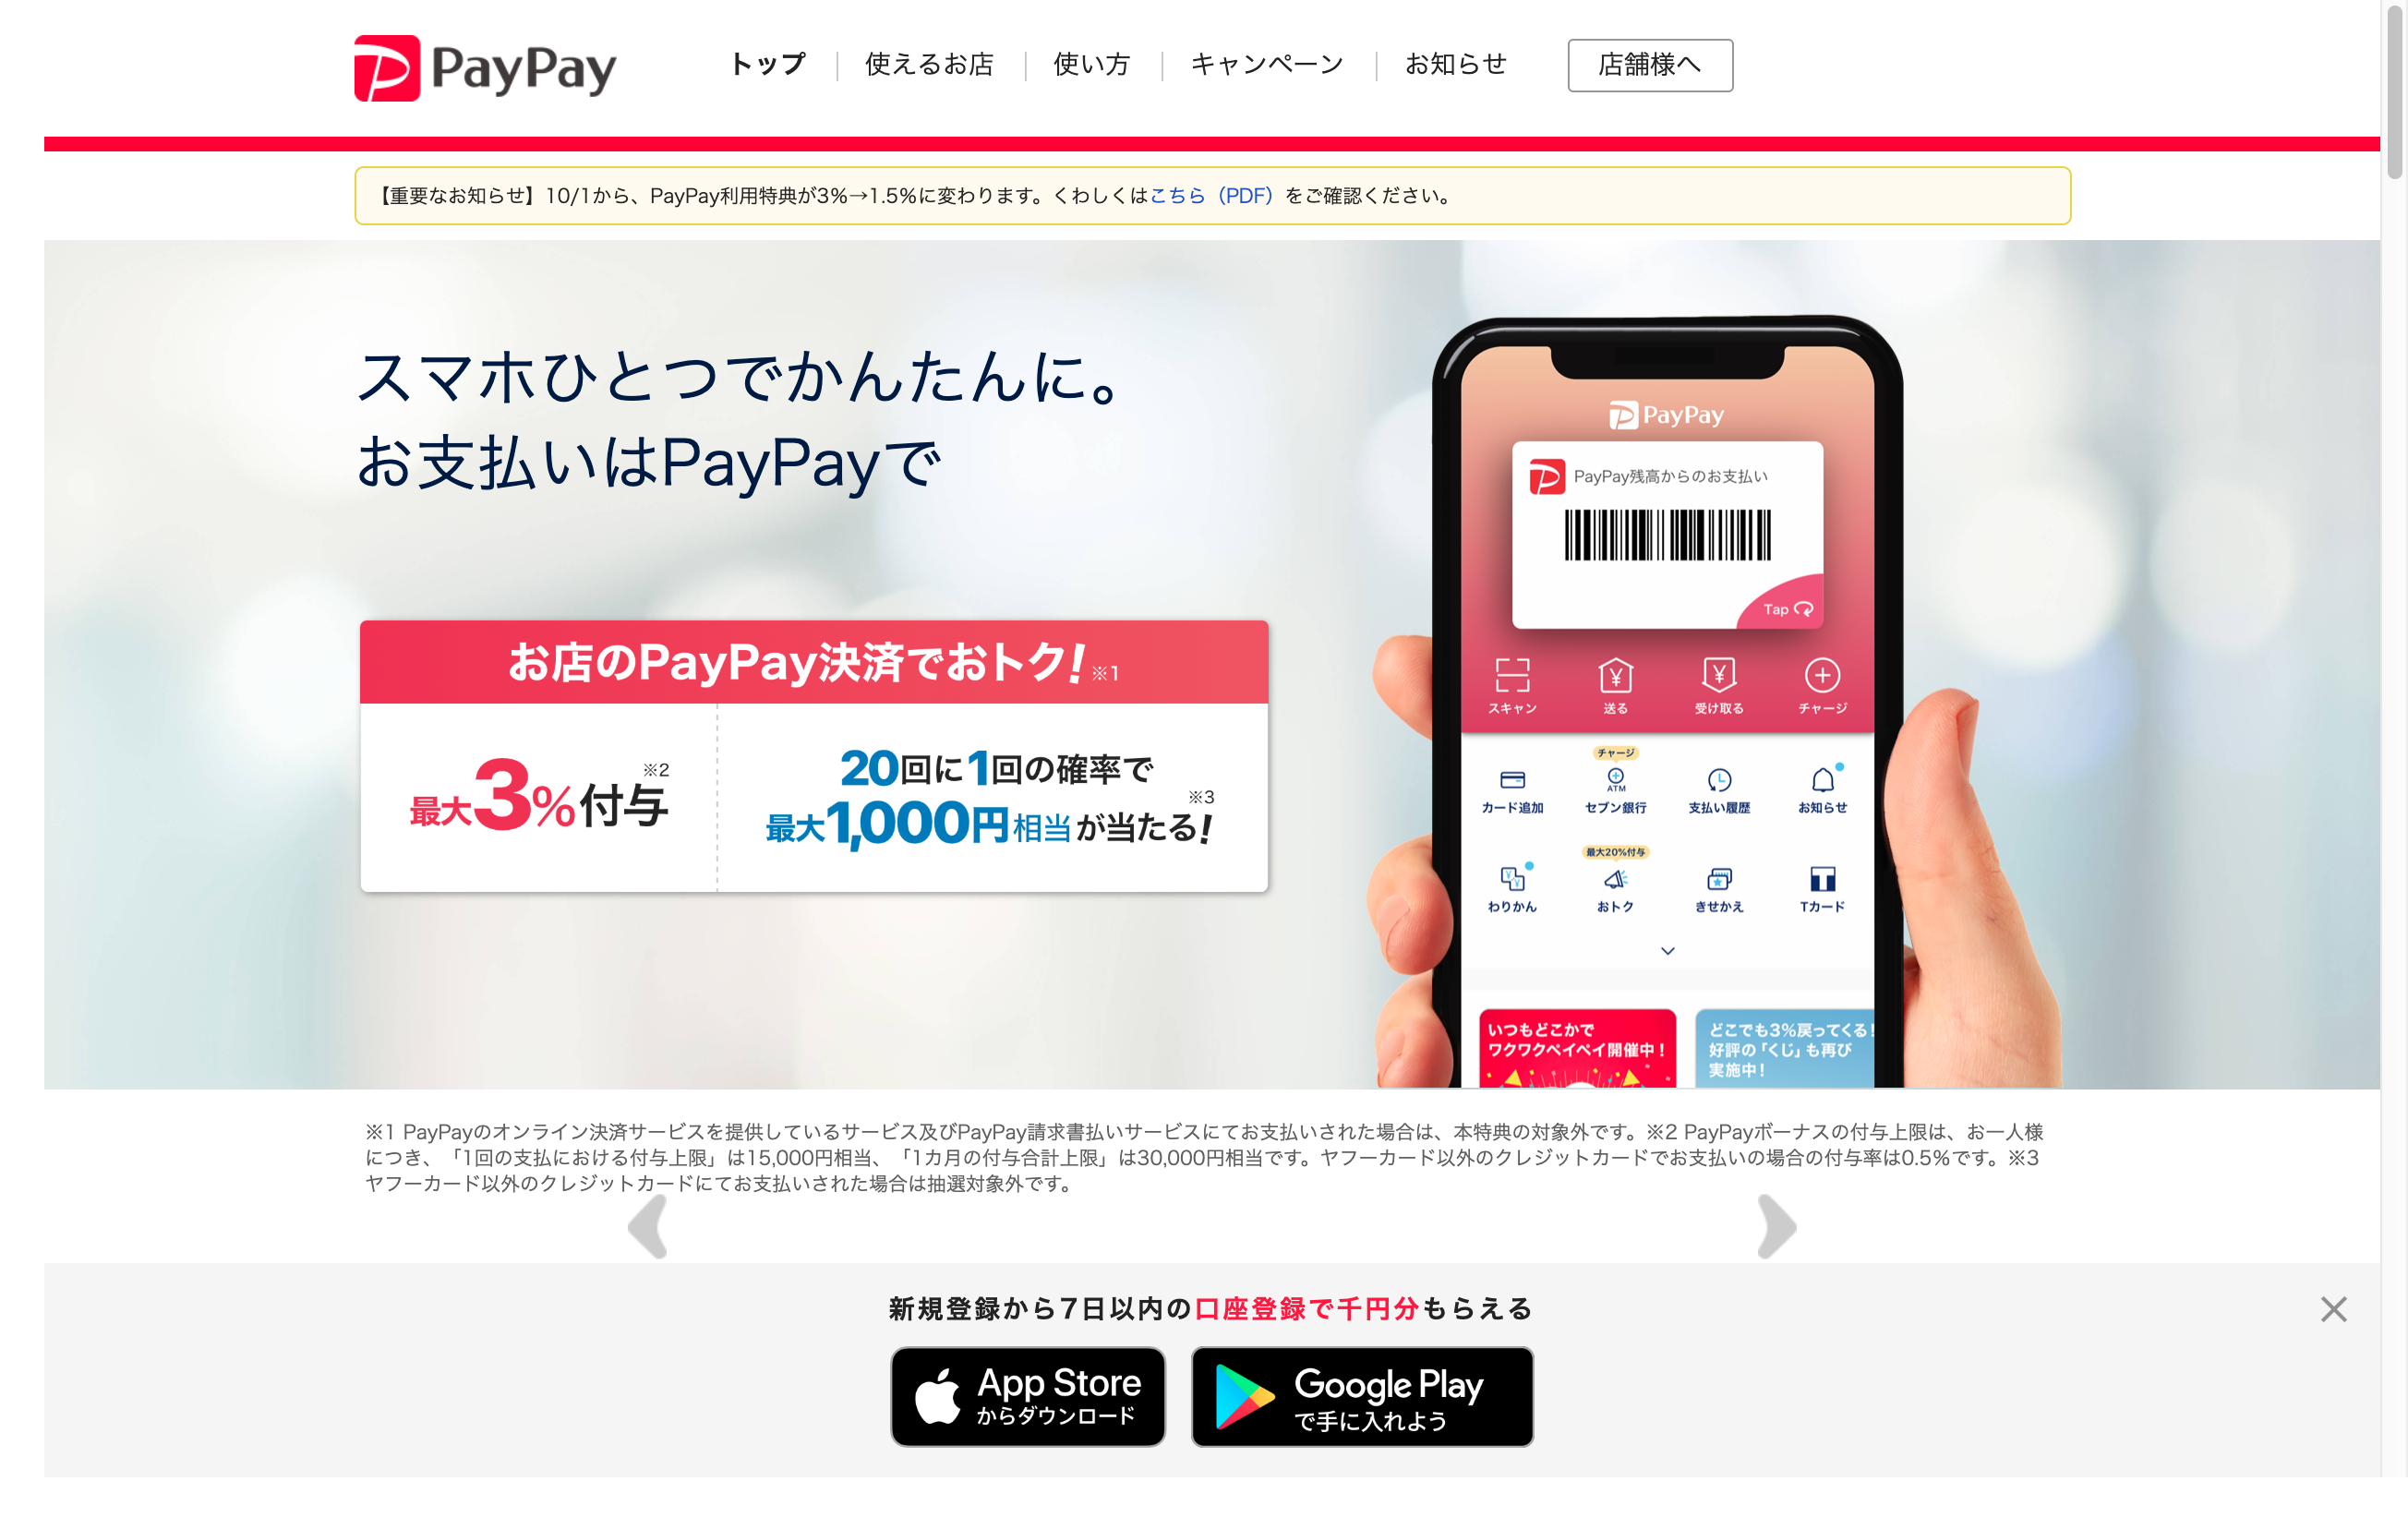 「PayPay」公式ホームページ1